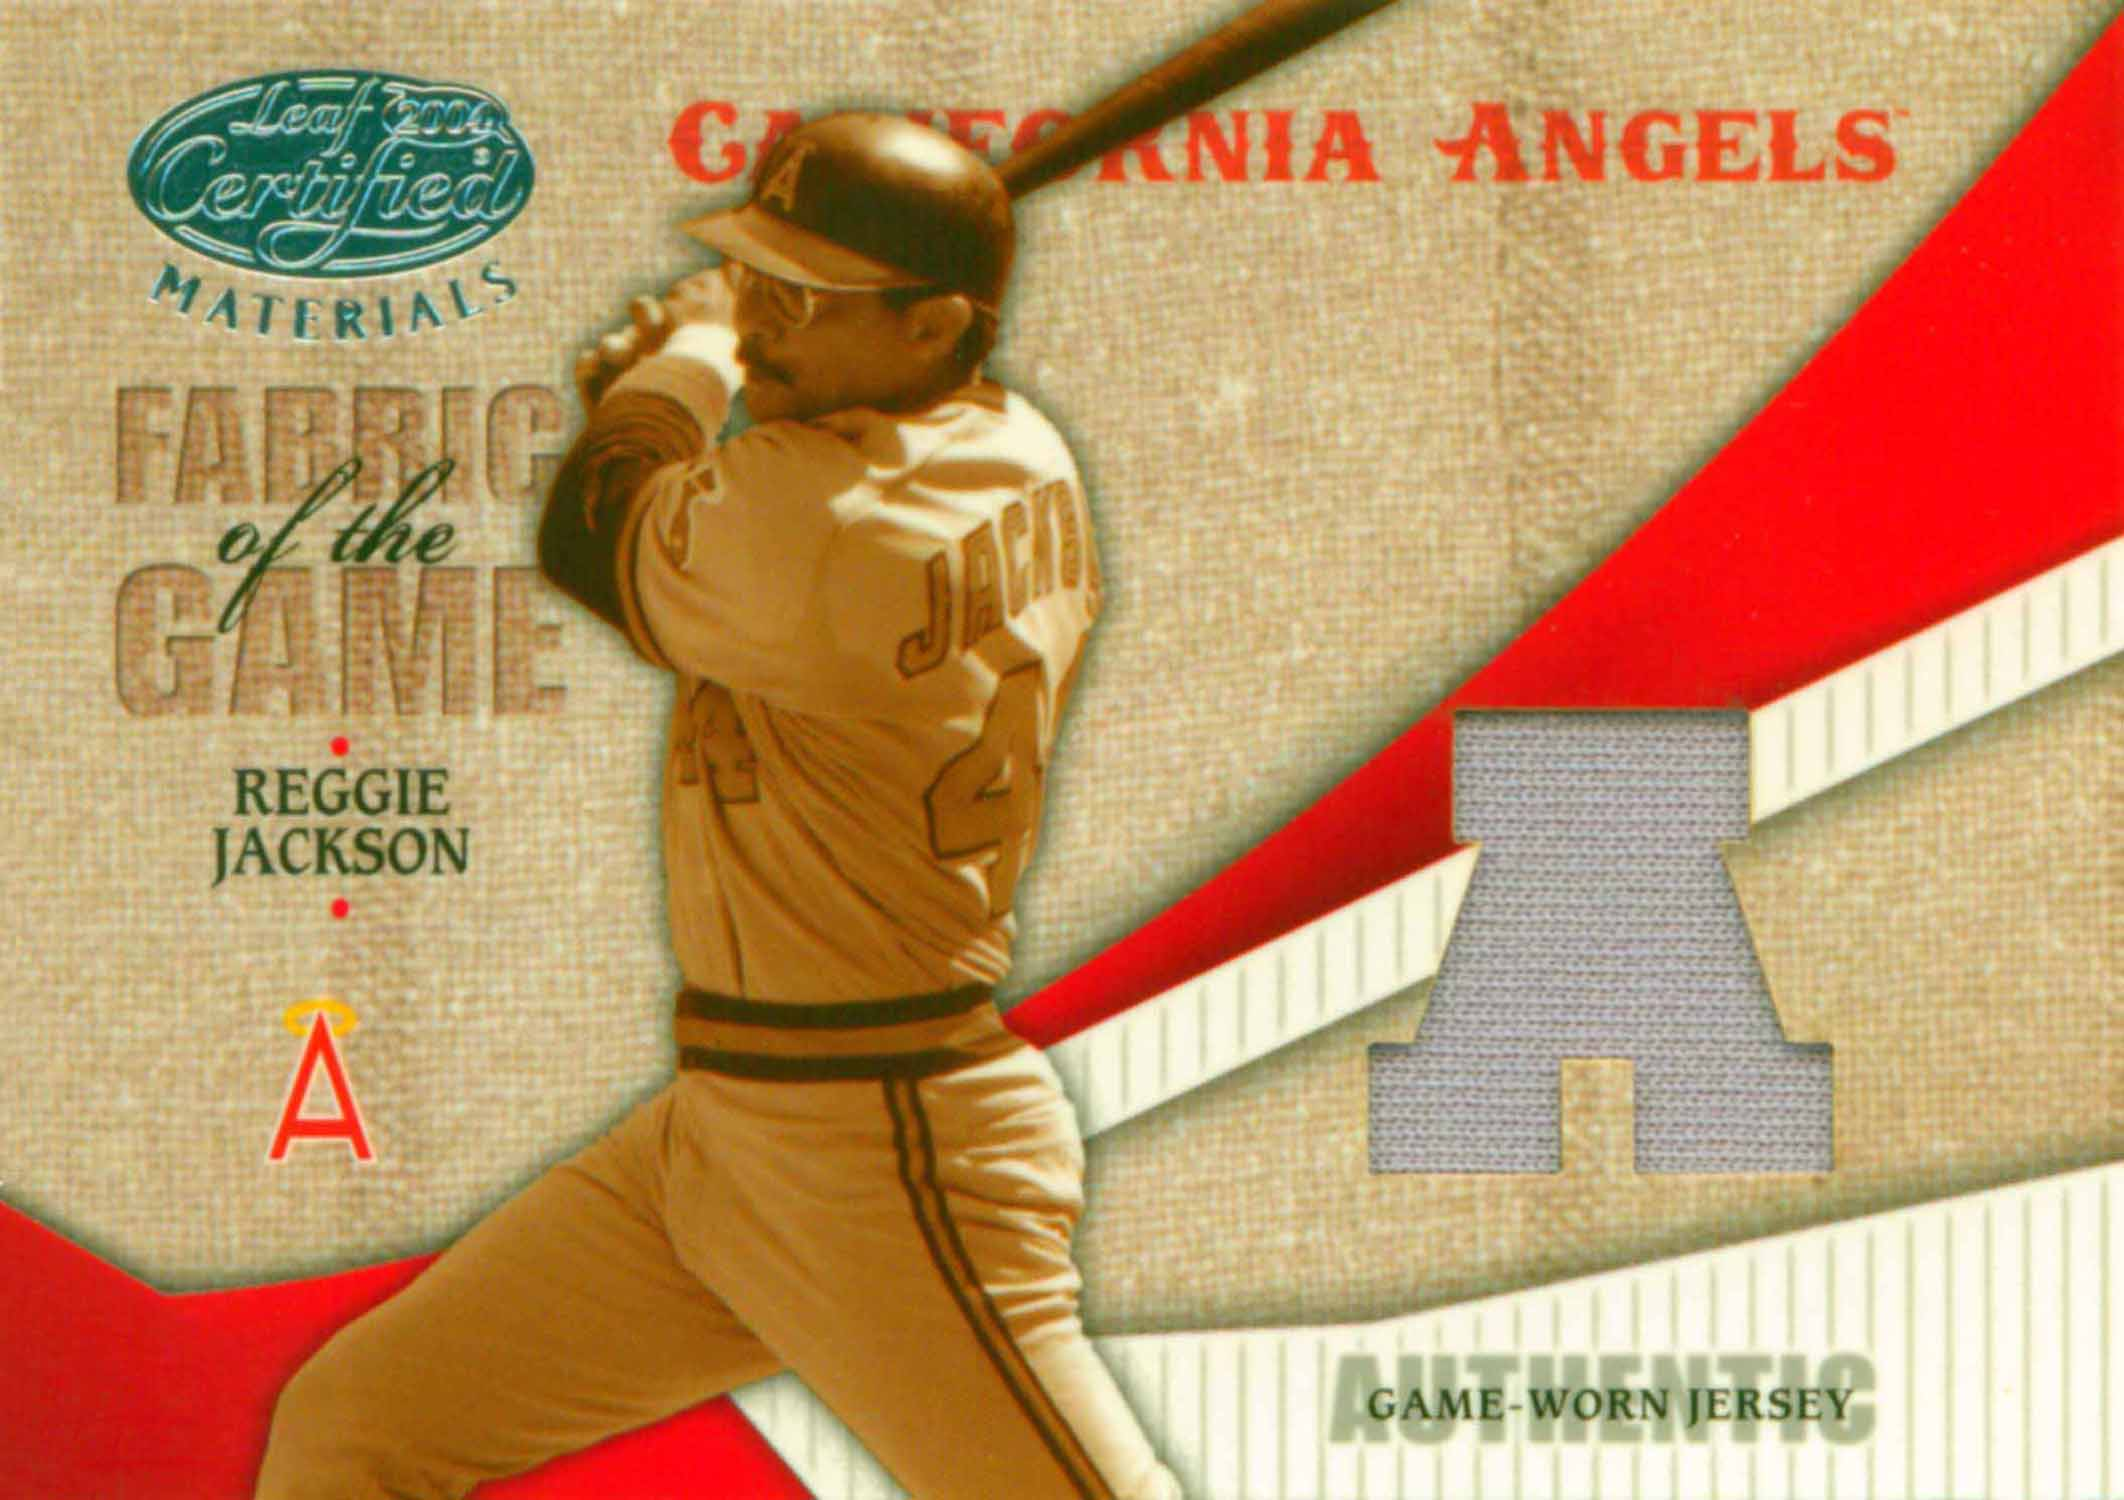 2004 Leaf Certified Materials Fabric of the Game AL/NL Jersey